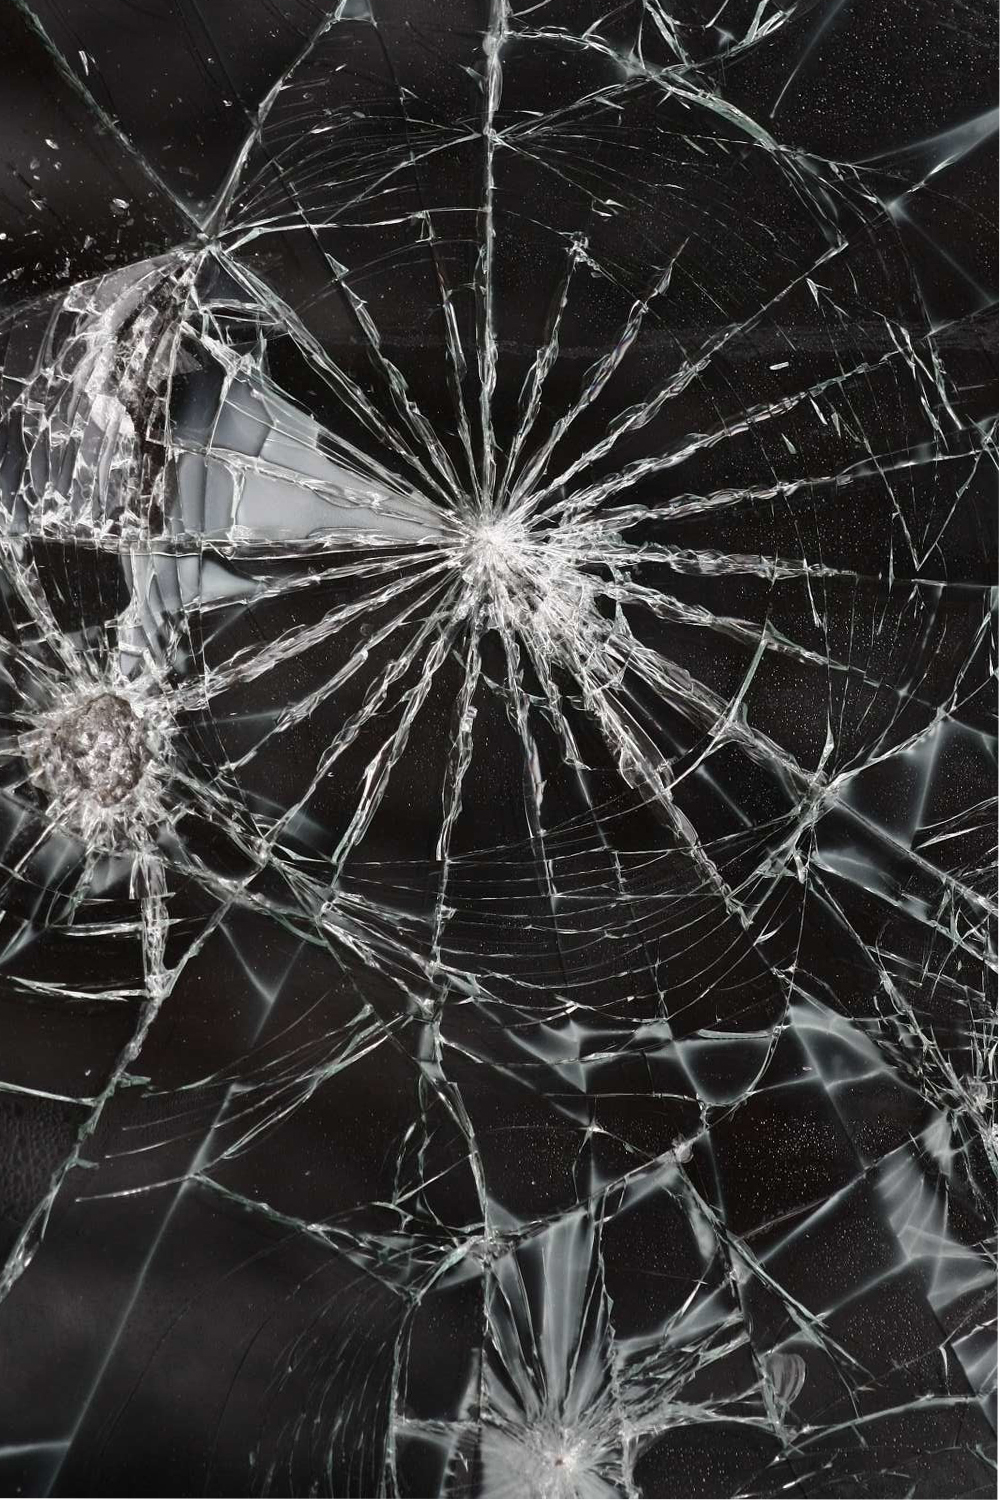 Broken Screen Wallpaper 4k Broken Screen Wallpaper 4k Download Broken Screen Wallpaper 3d In 2020 Broken Screen Wallpaper Broken Glass Wallpaper Screen Wallpaper Hd